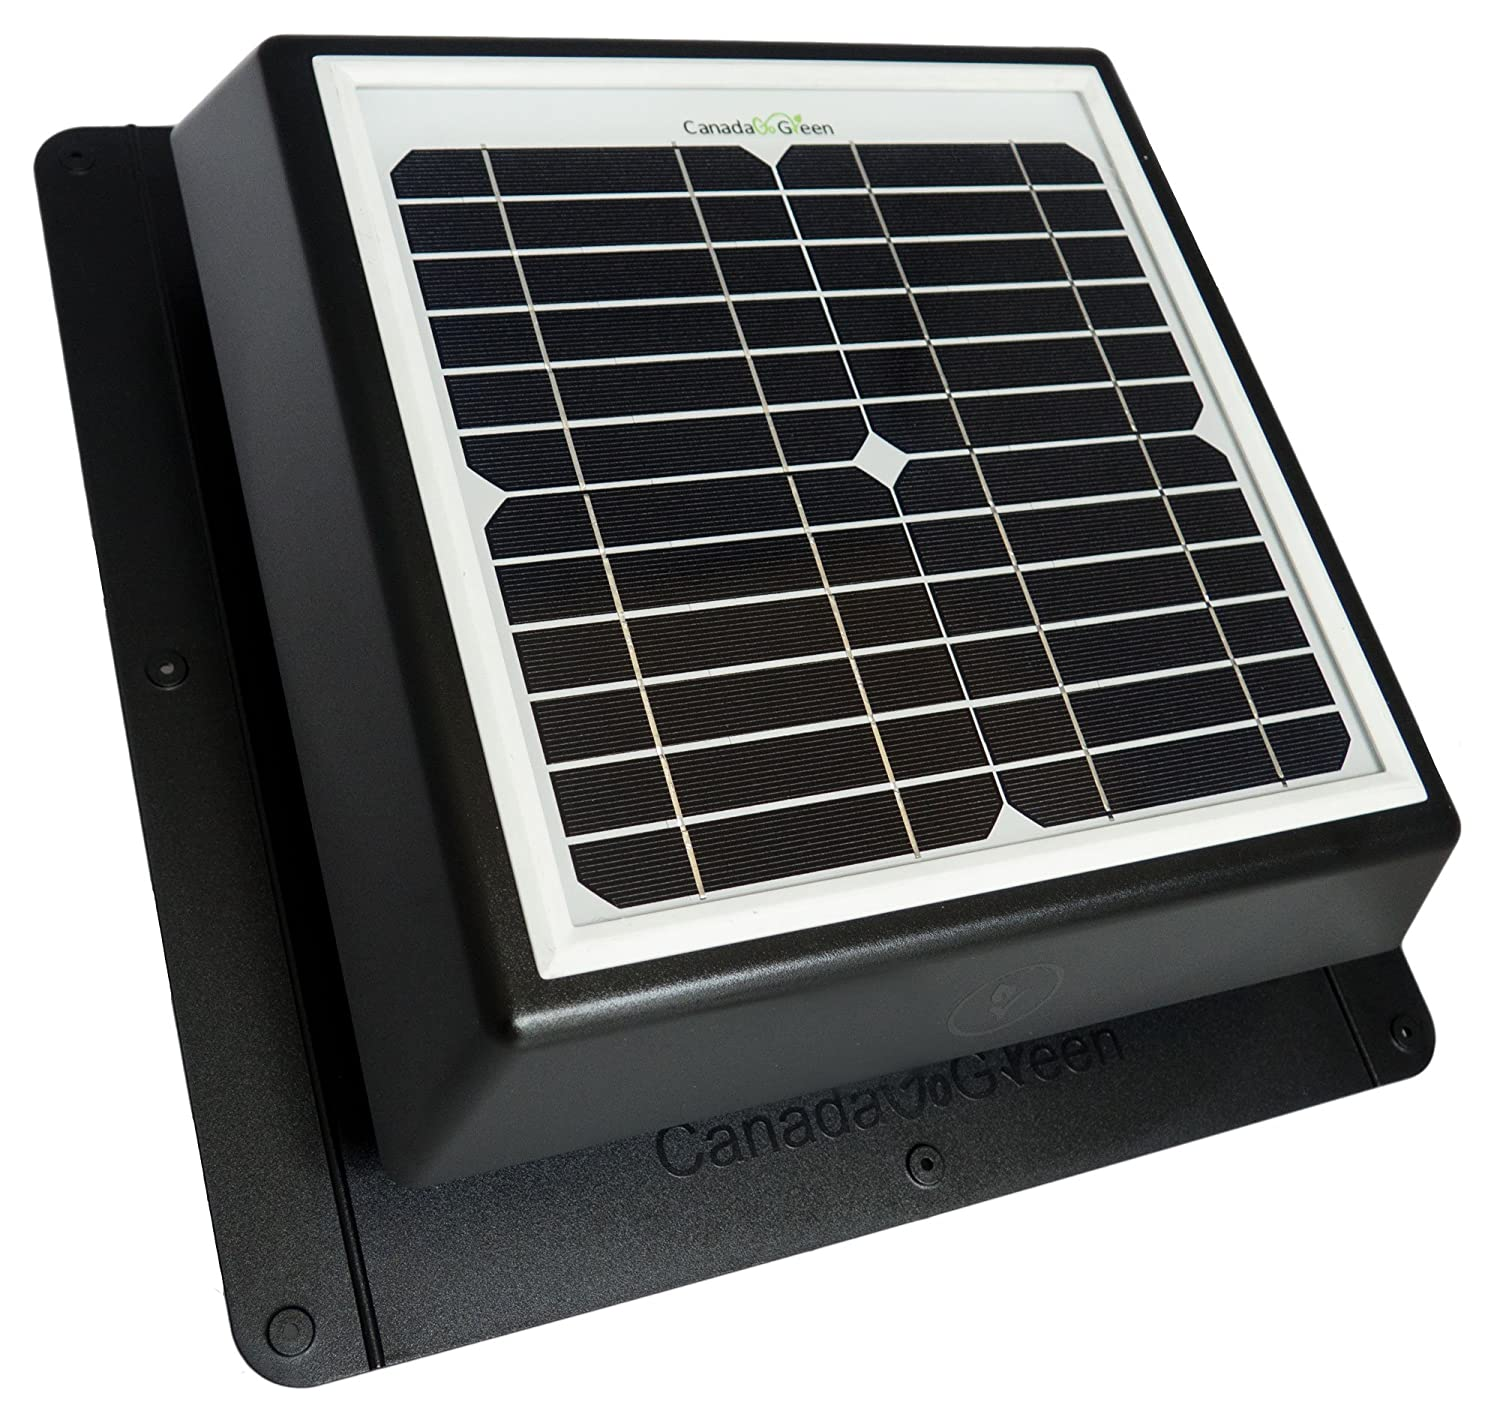 4 Seasons Solar Attic Fan CanadaGoGreen